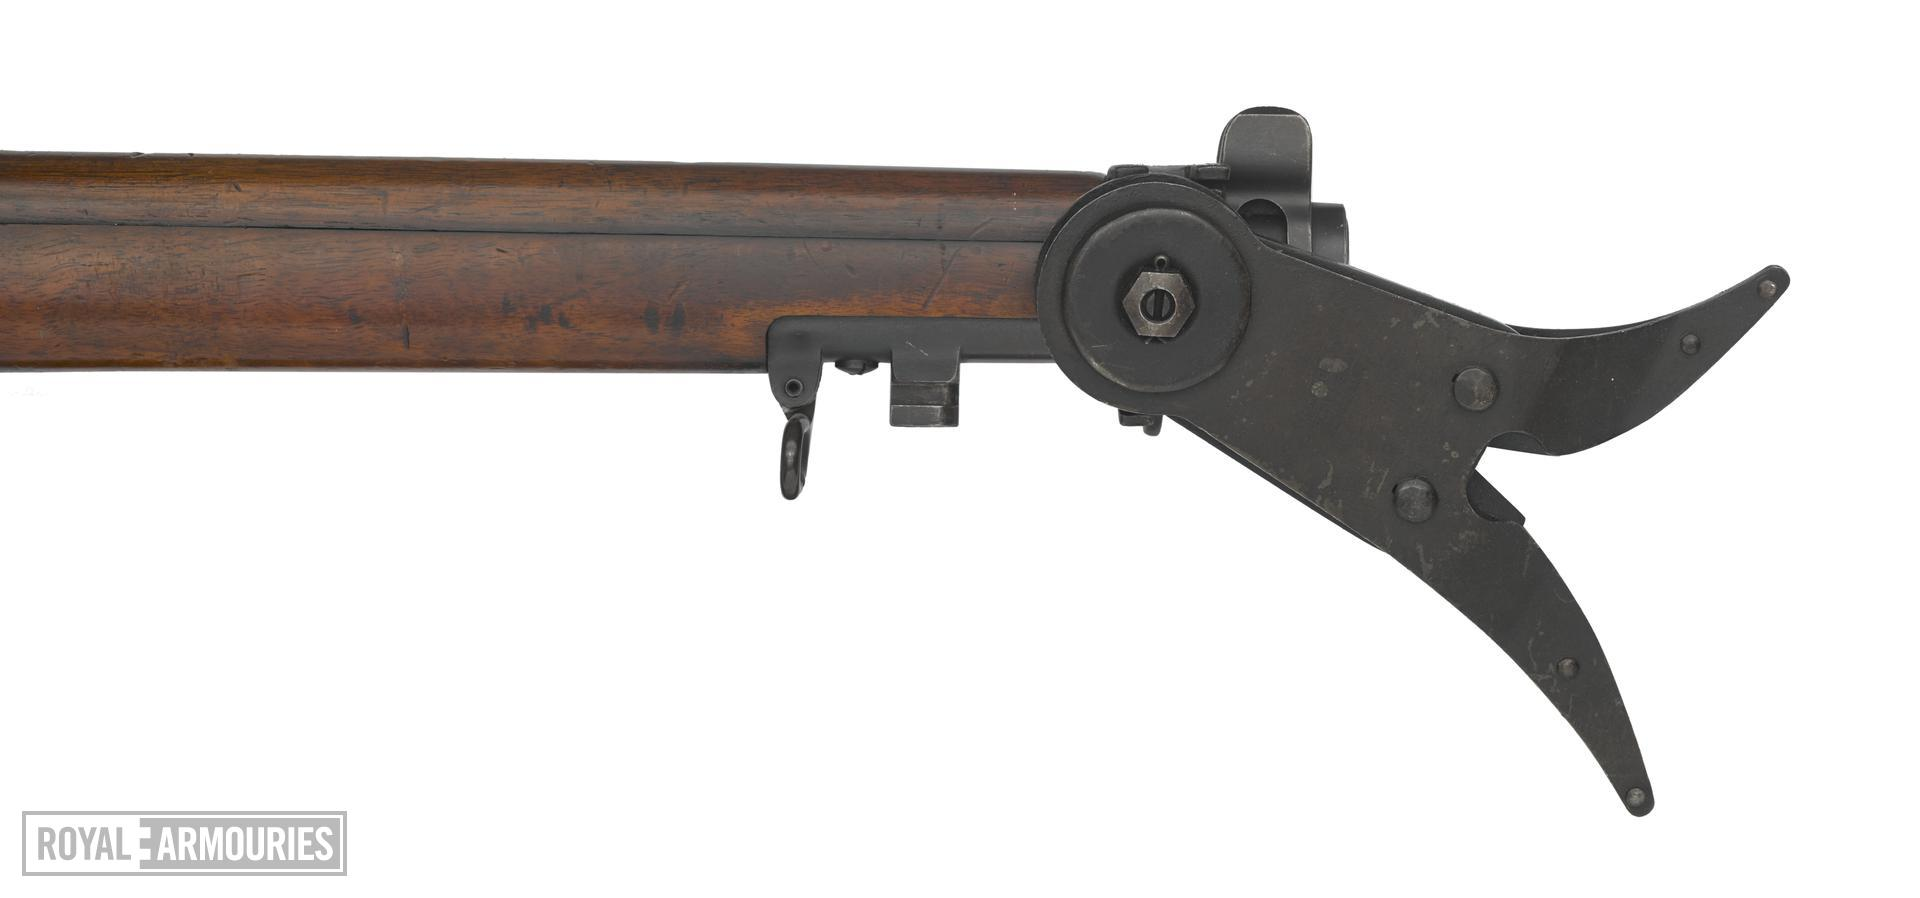 Centrefire bolt-action magazine rifle - Lee-Enfield Mk.III